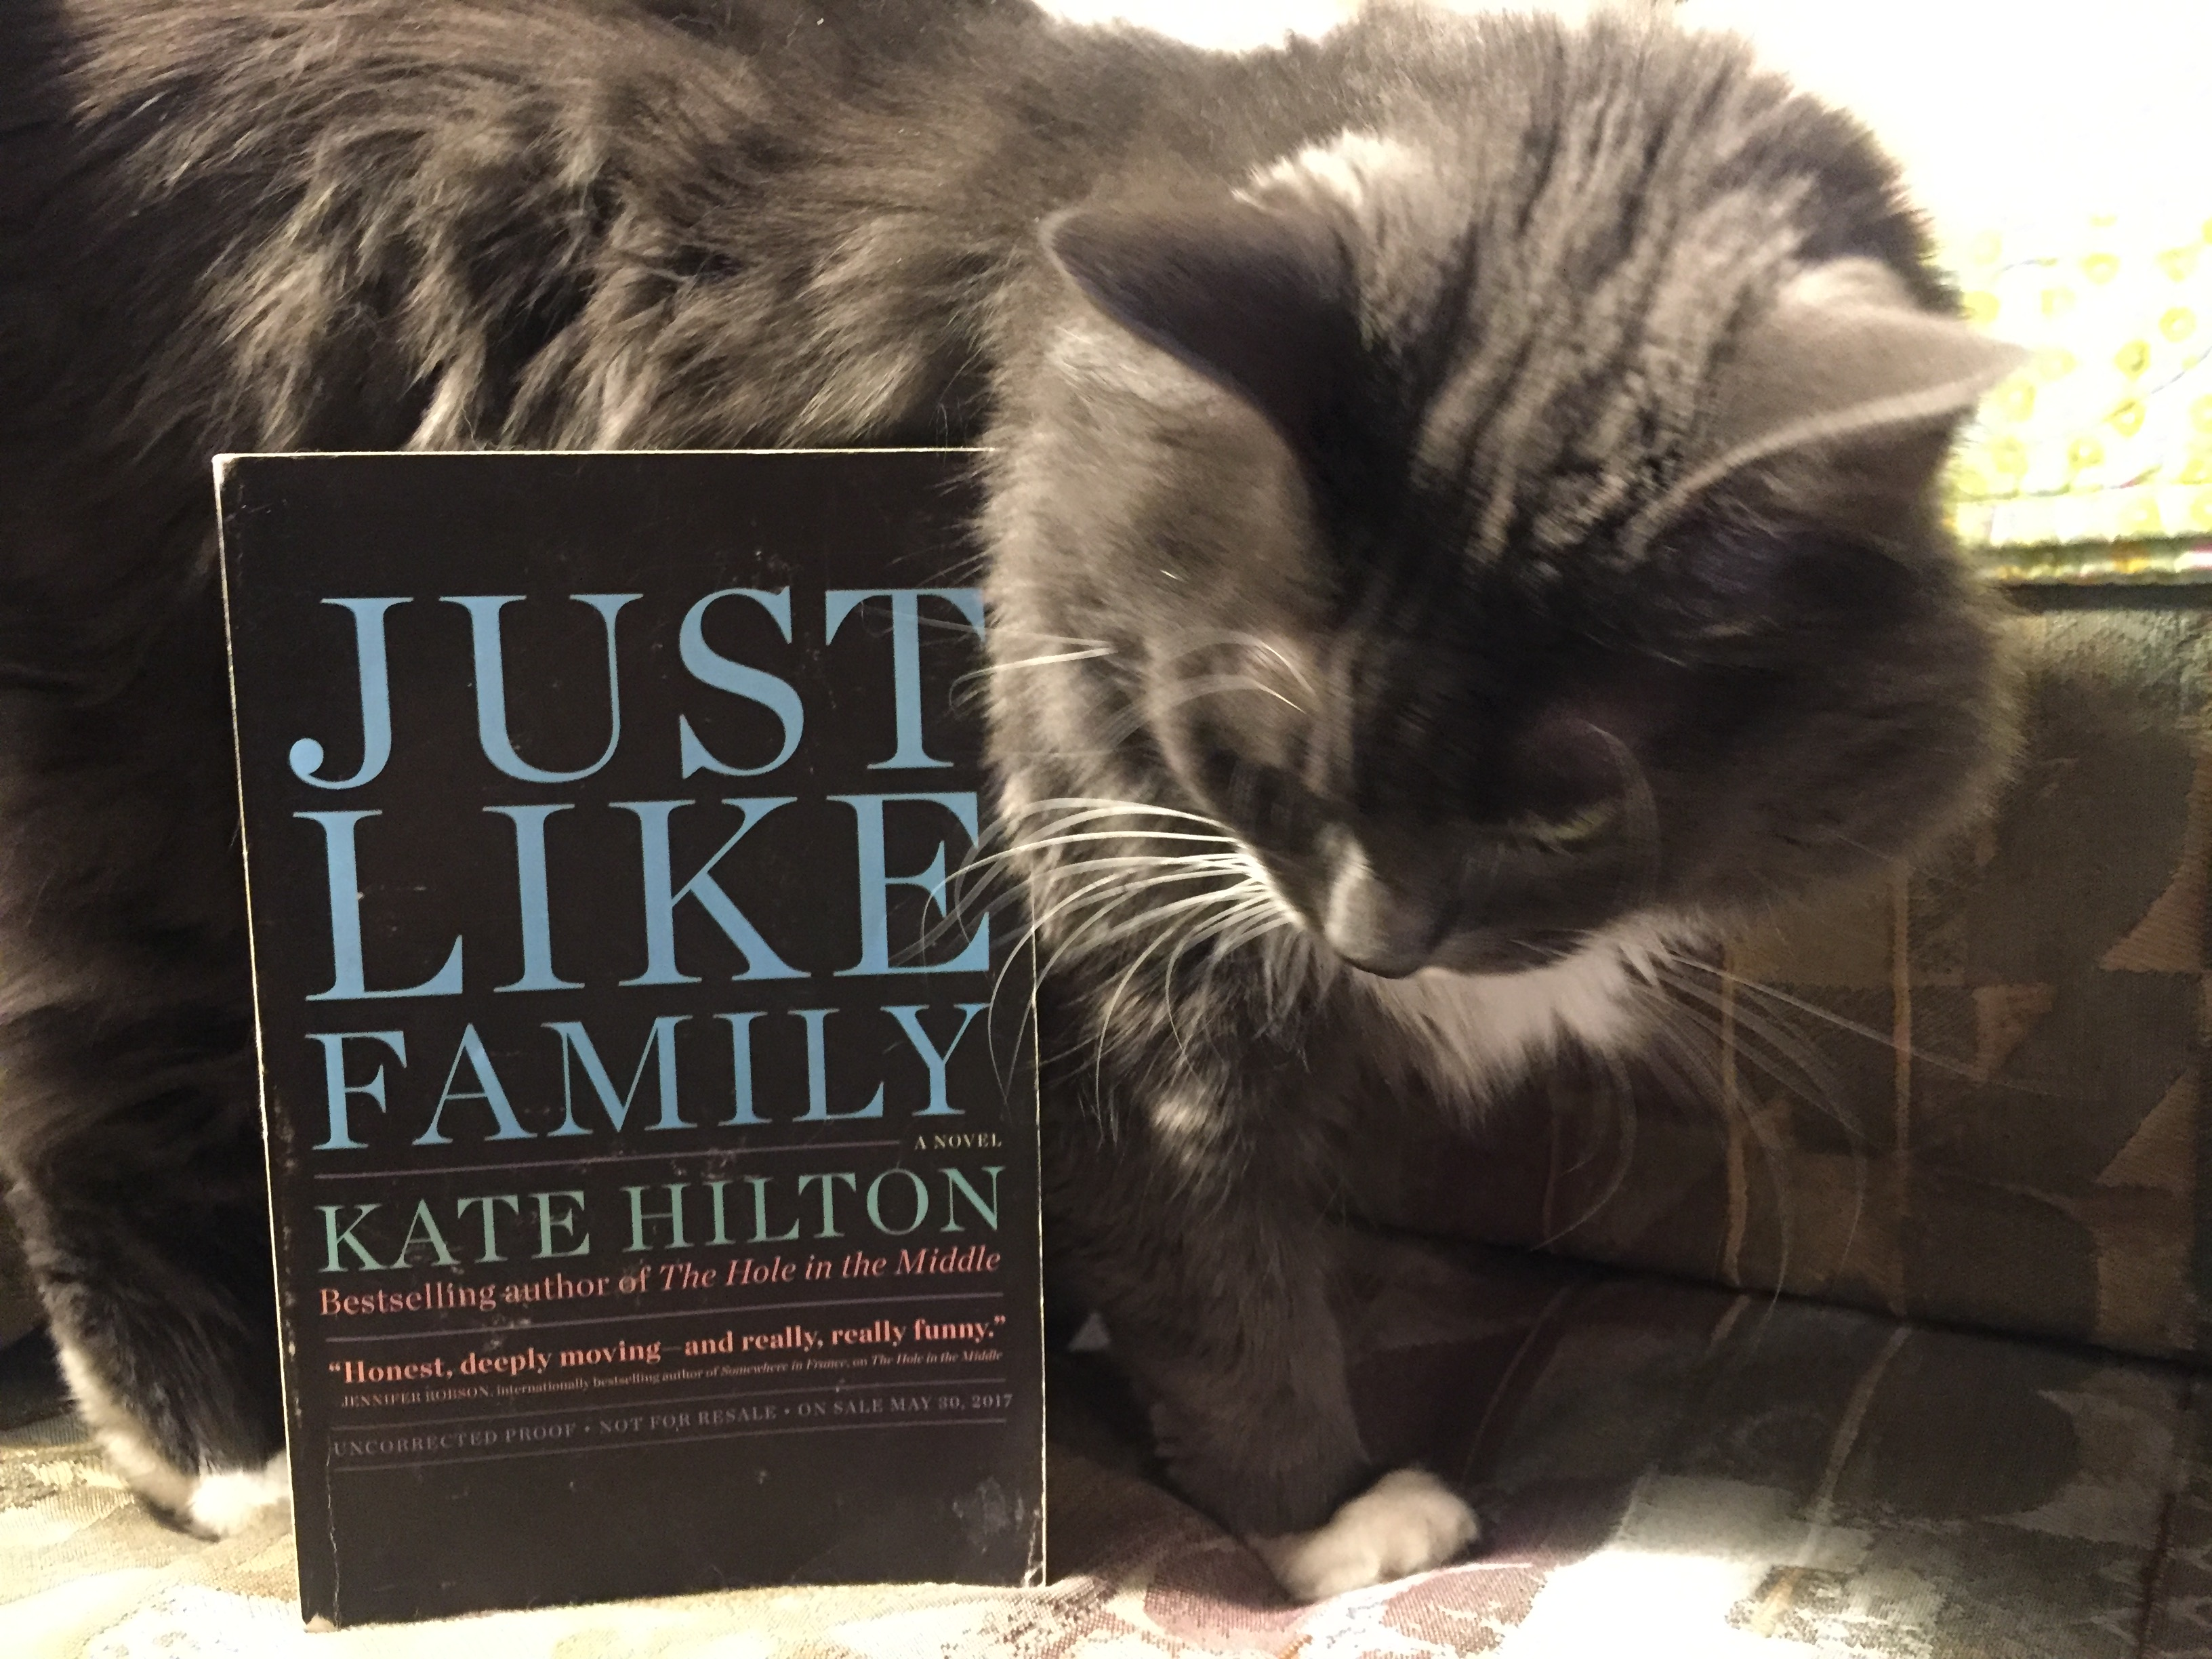 Author Interview and Giveaway: Kate Hilton*